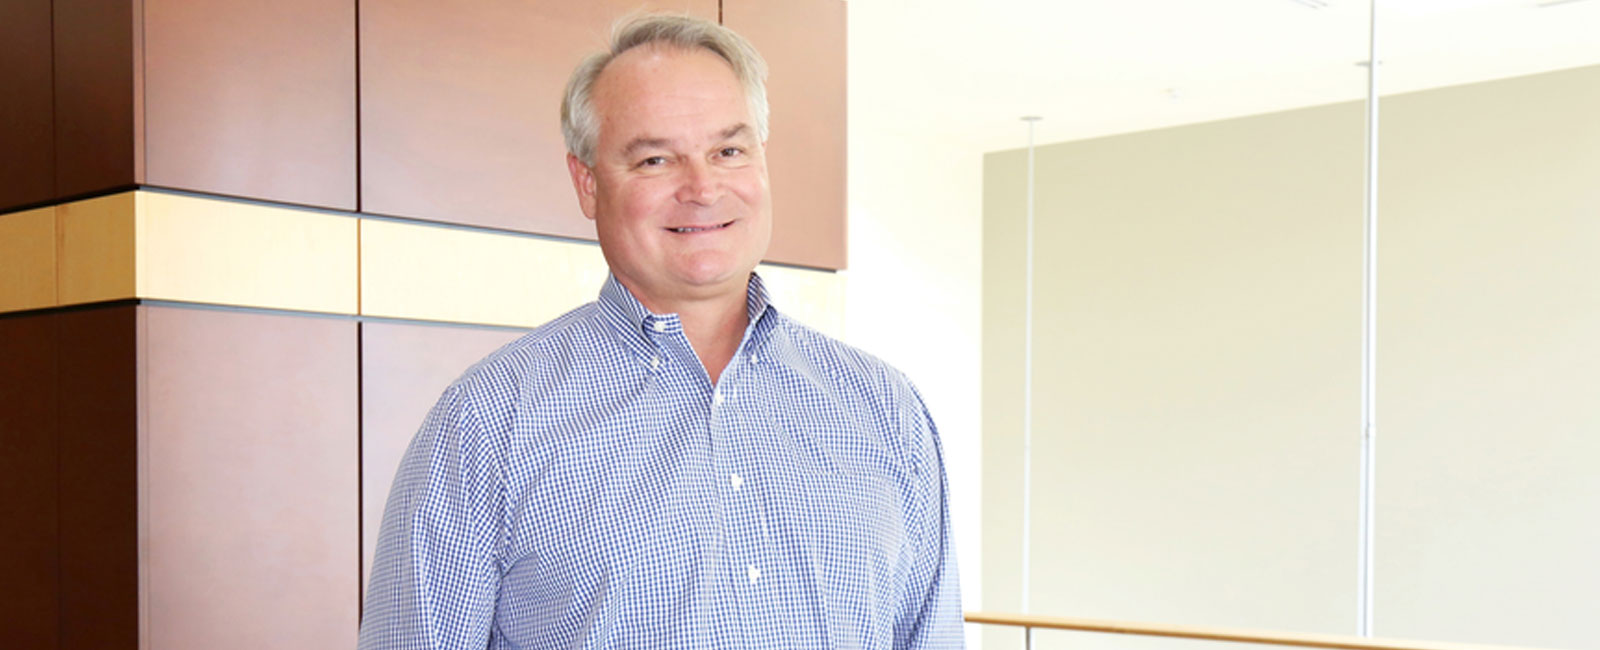 A photo of CEO/founder Dr. Michael Havig